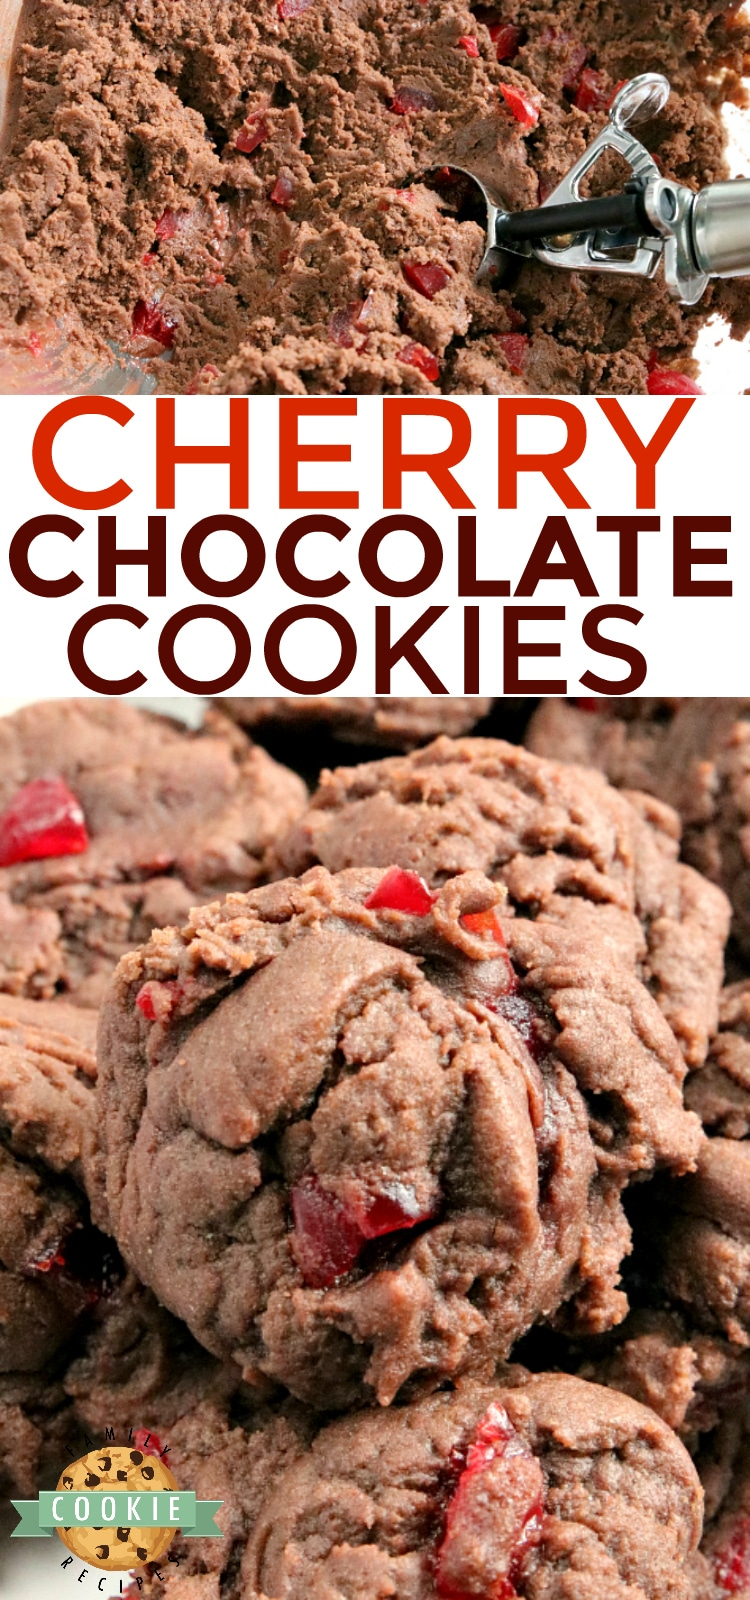 Cherry Chocolate Cookies are soft, chewy and full of cherries! There is chocolate pudding mix in these cookies which gives them the perfect flavor and consistency every time.